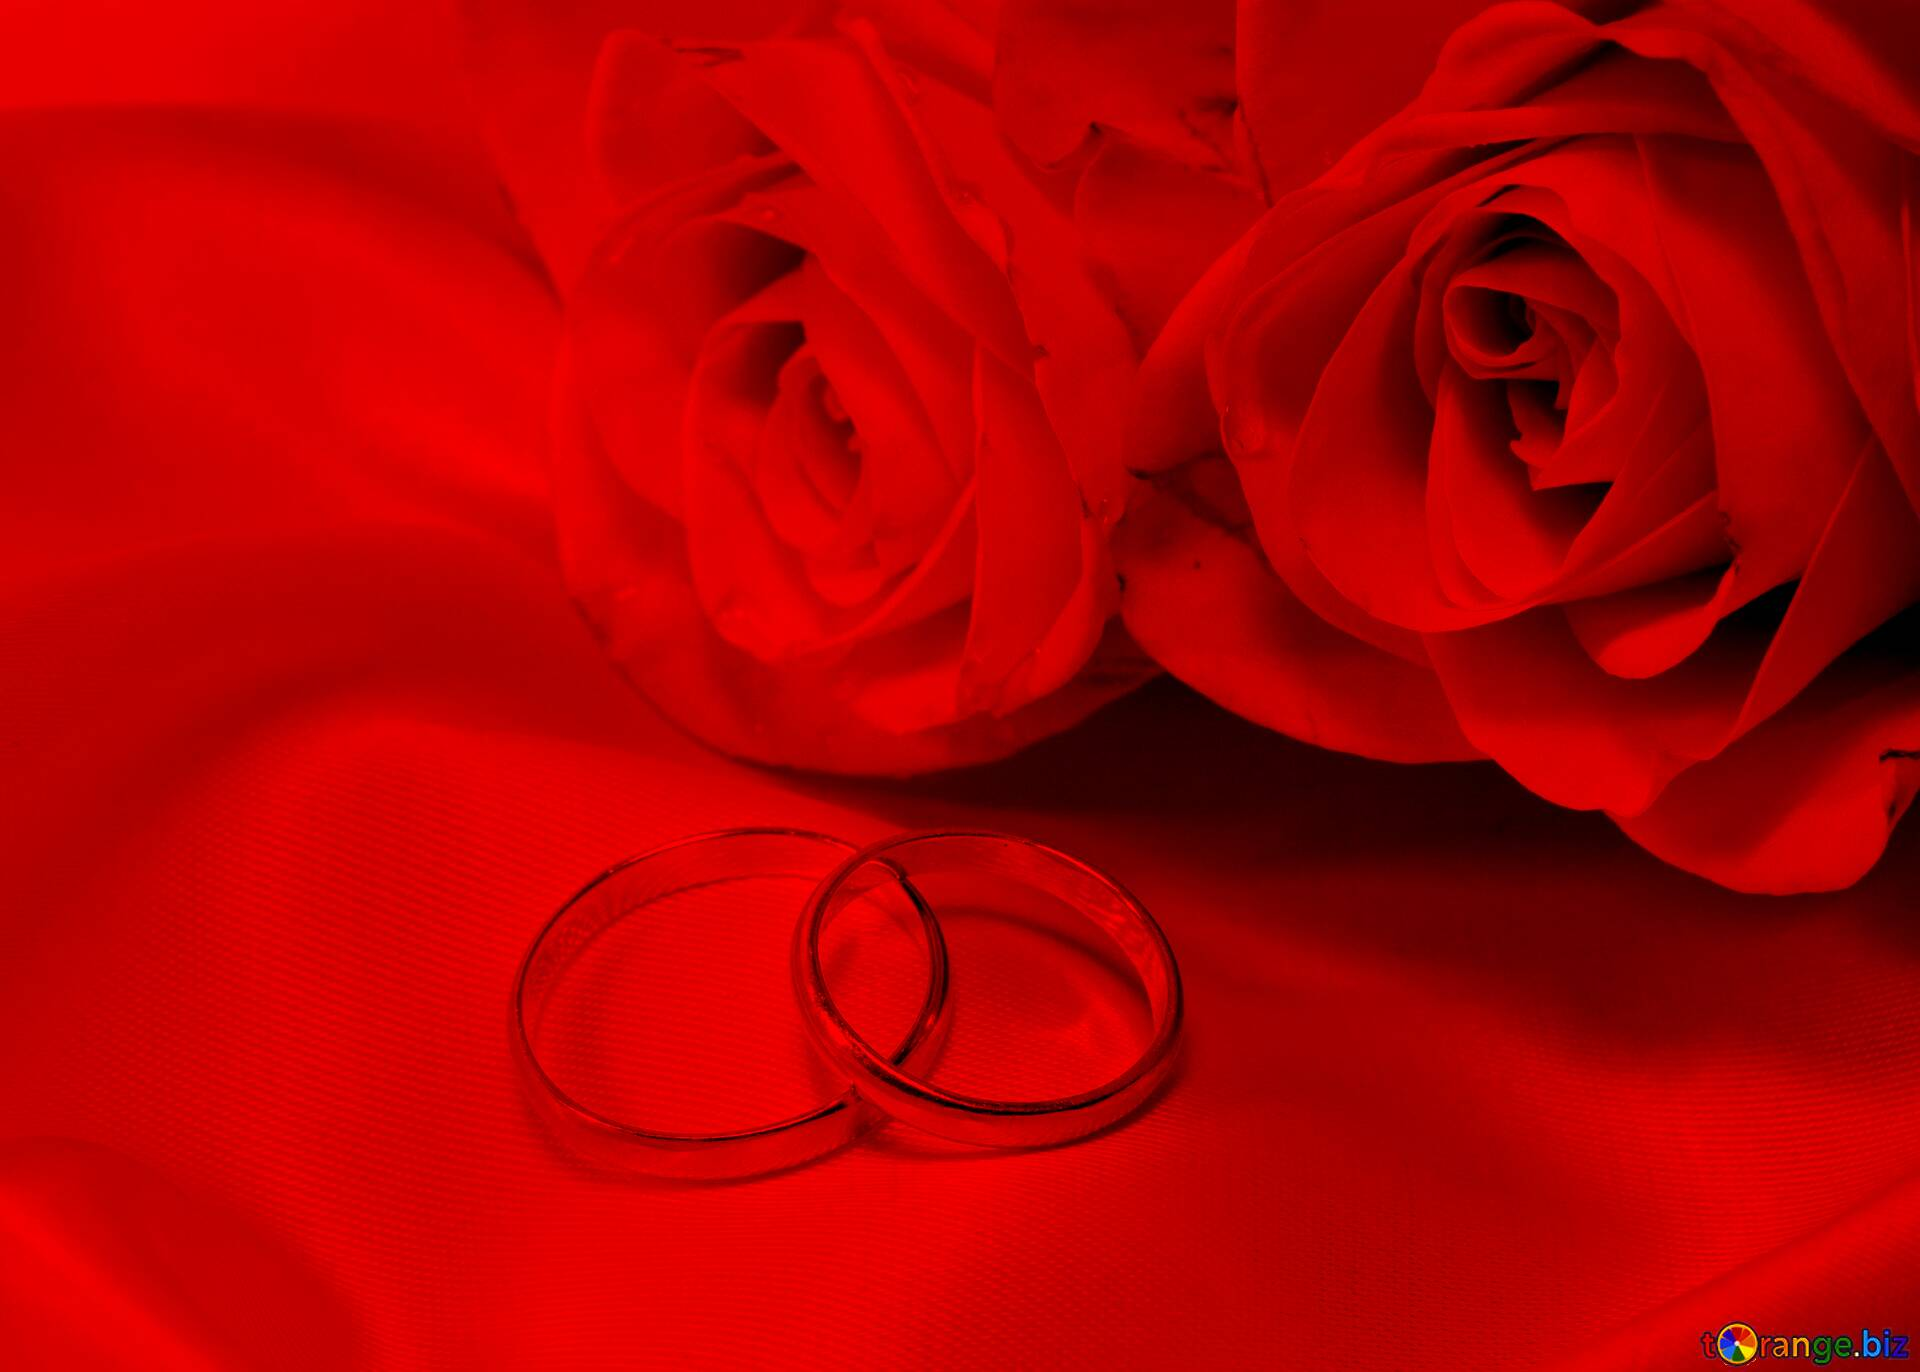 Download Free Picture Red Wedding Card Background On Cc By License Free Image Stock Torange Biz Fx 137734